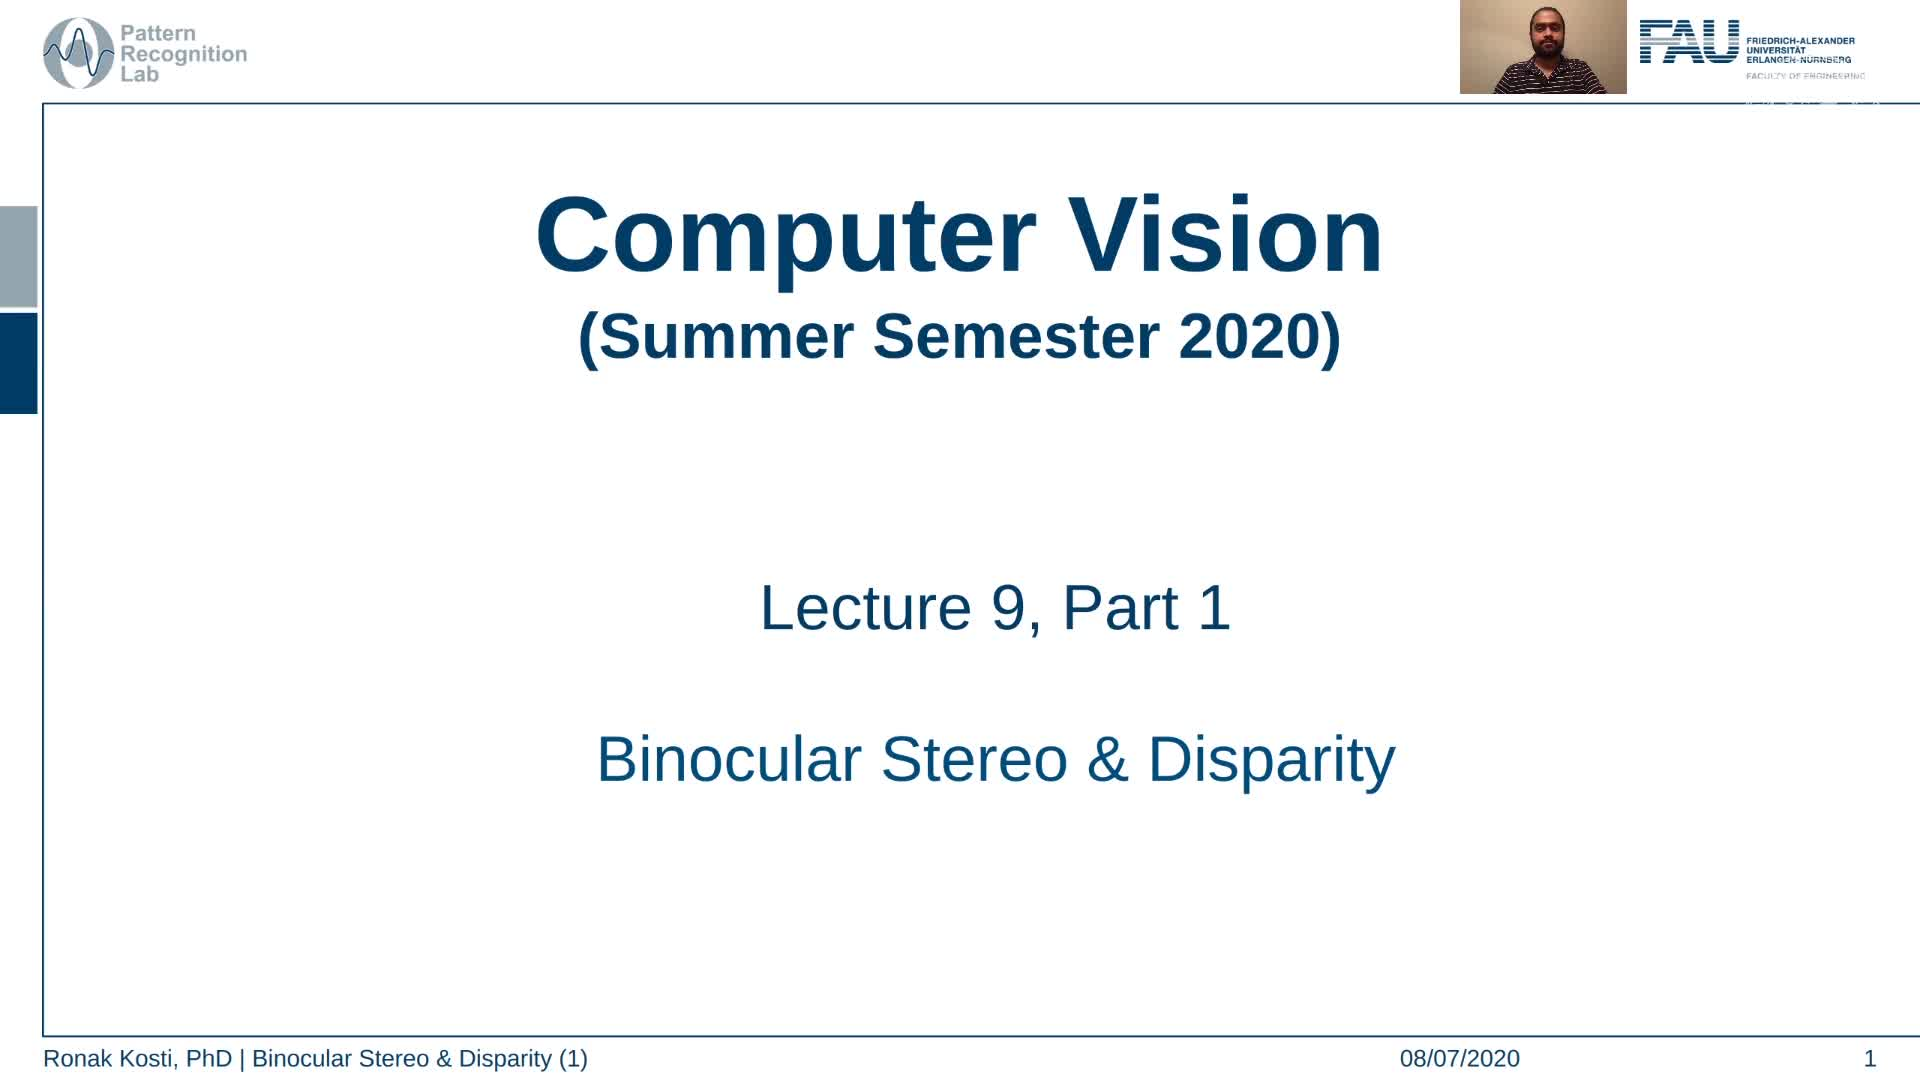 Binocular Stereo and Disparity (Lecture 9, Part 1) preview image